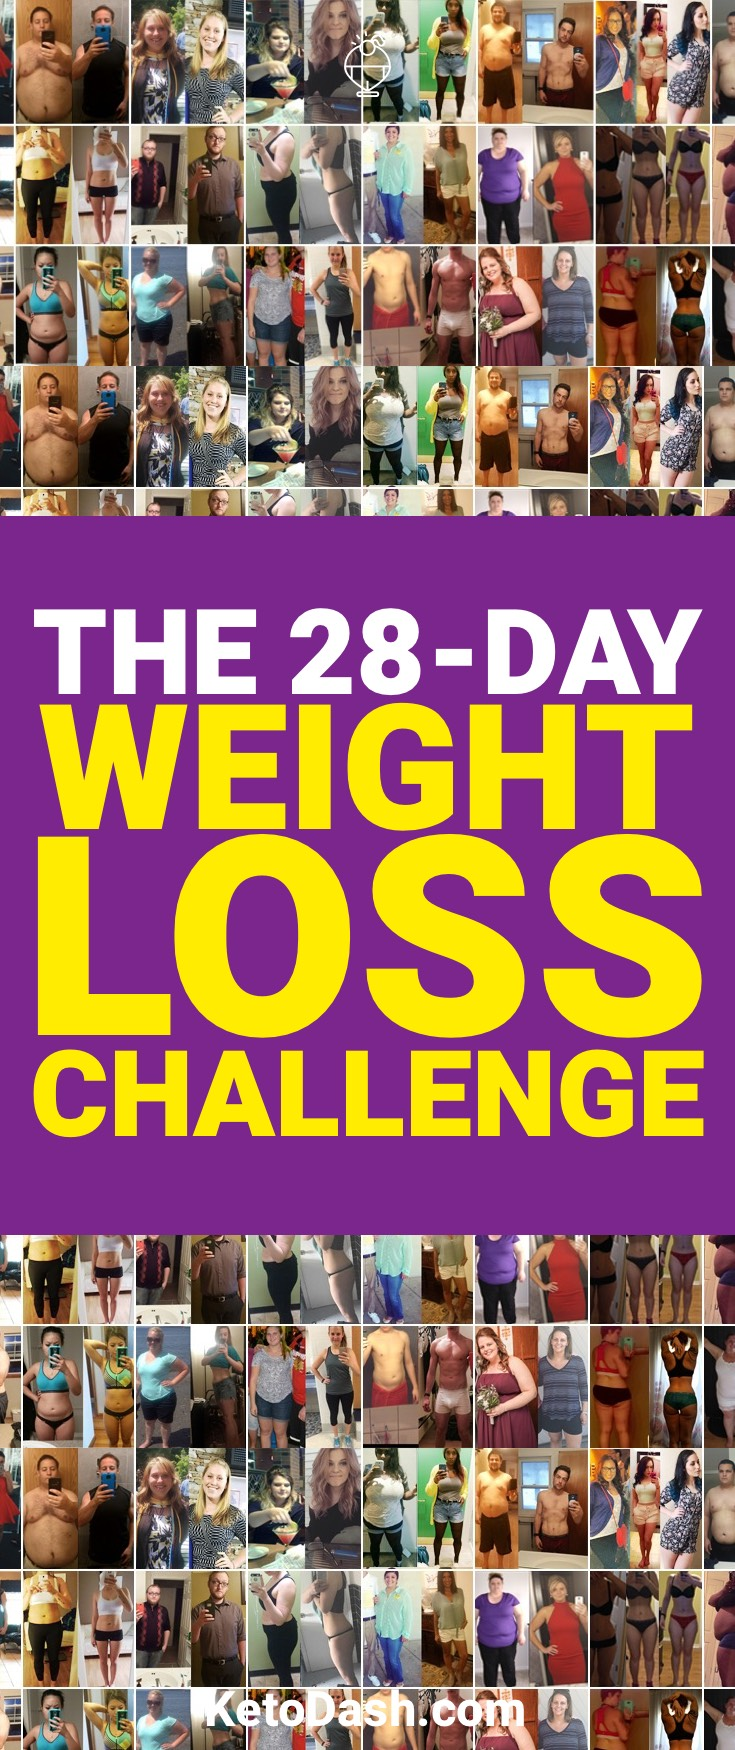 Lose weight quick. With the Keto Dash System you can lose 10 - 21 lbs in 28 days.